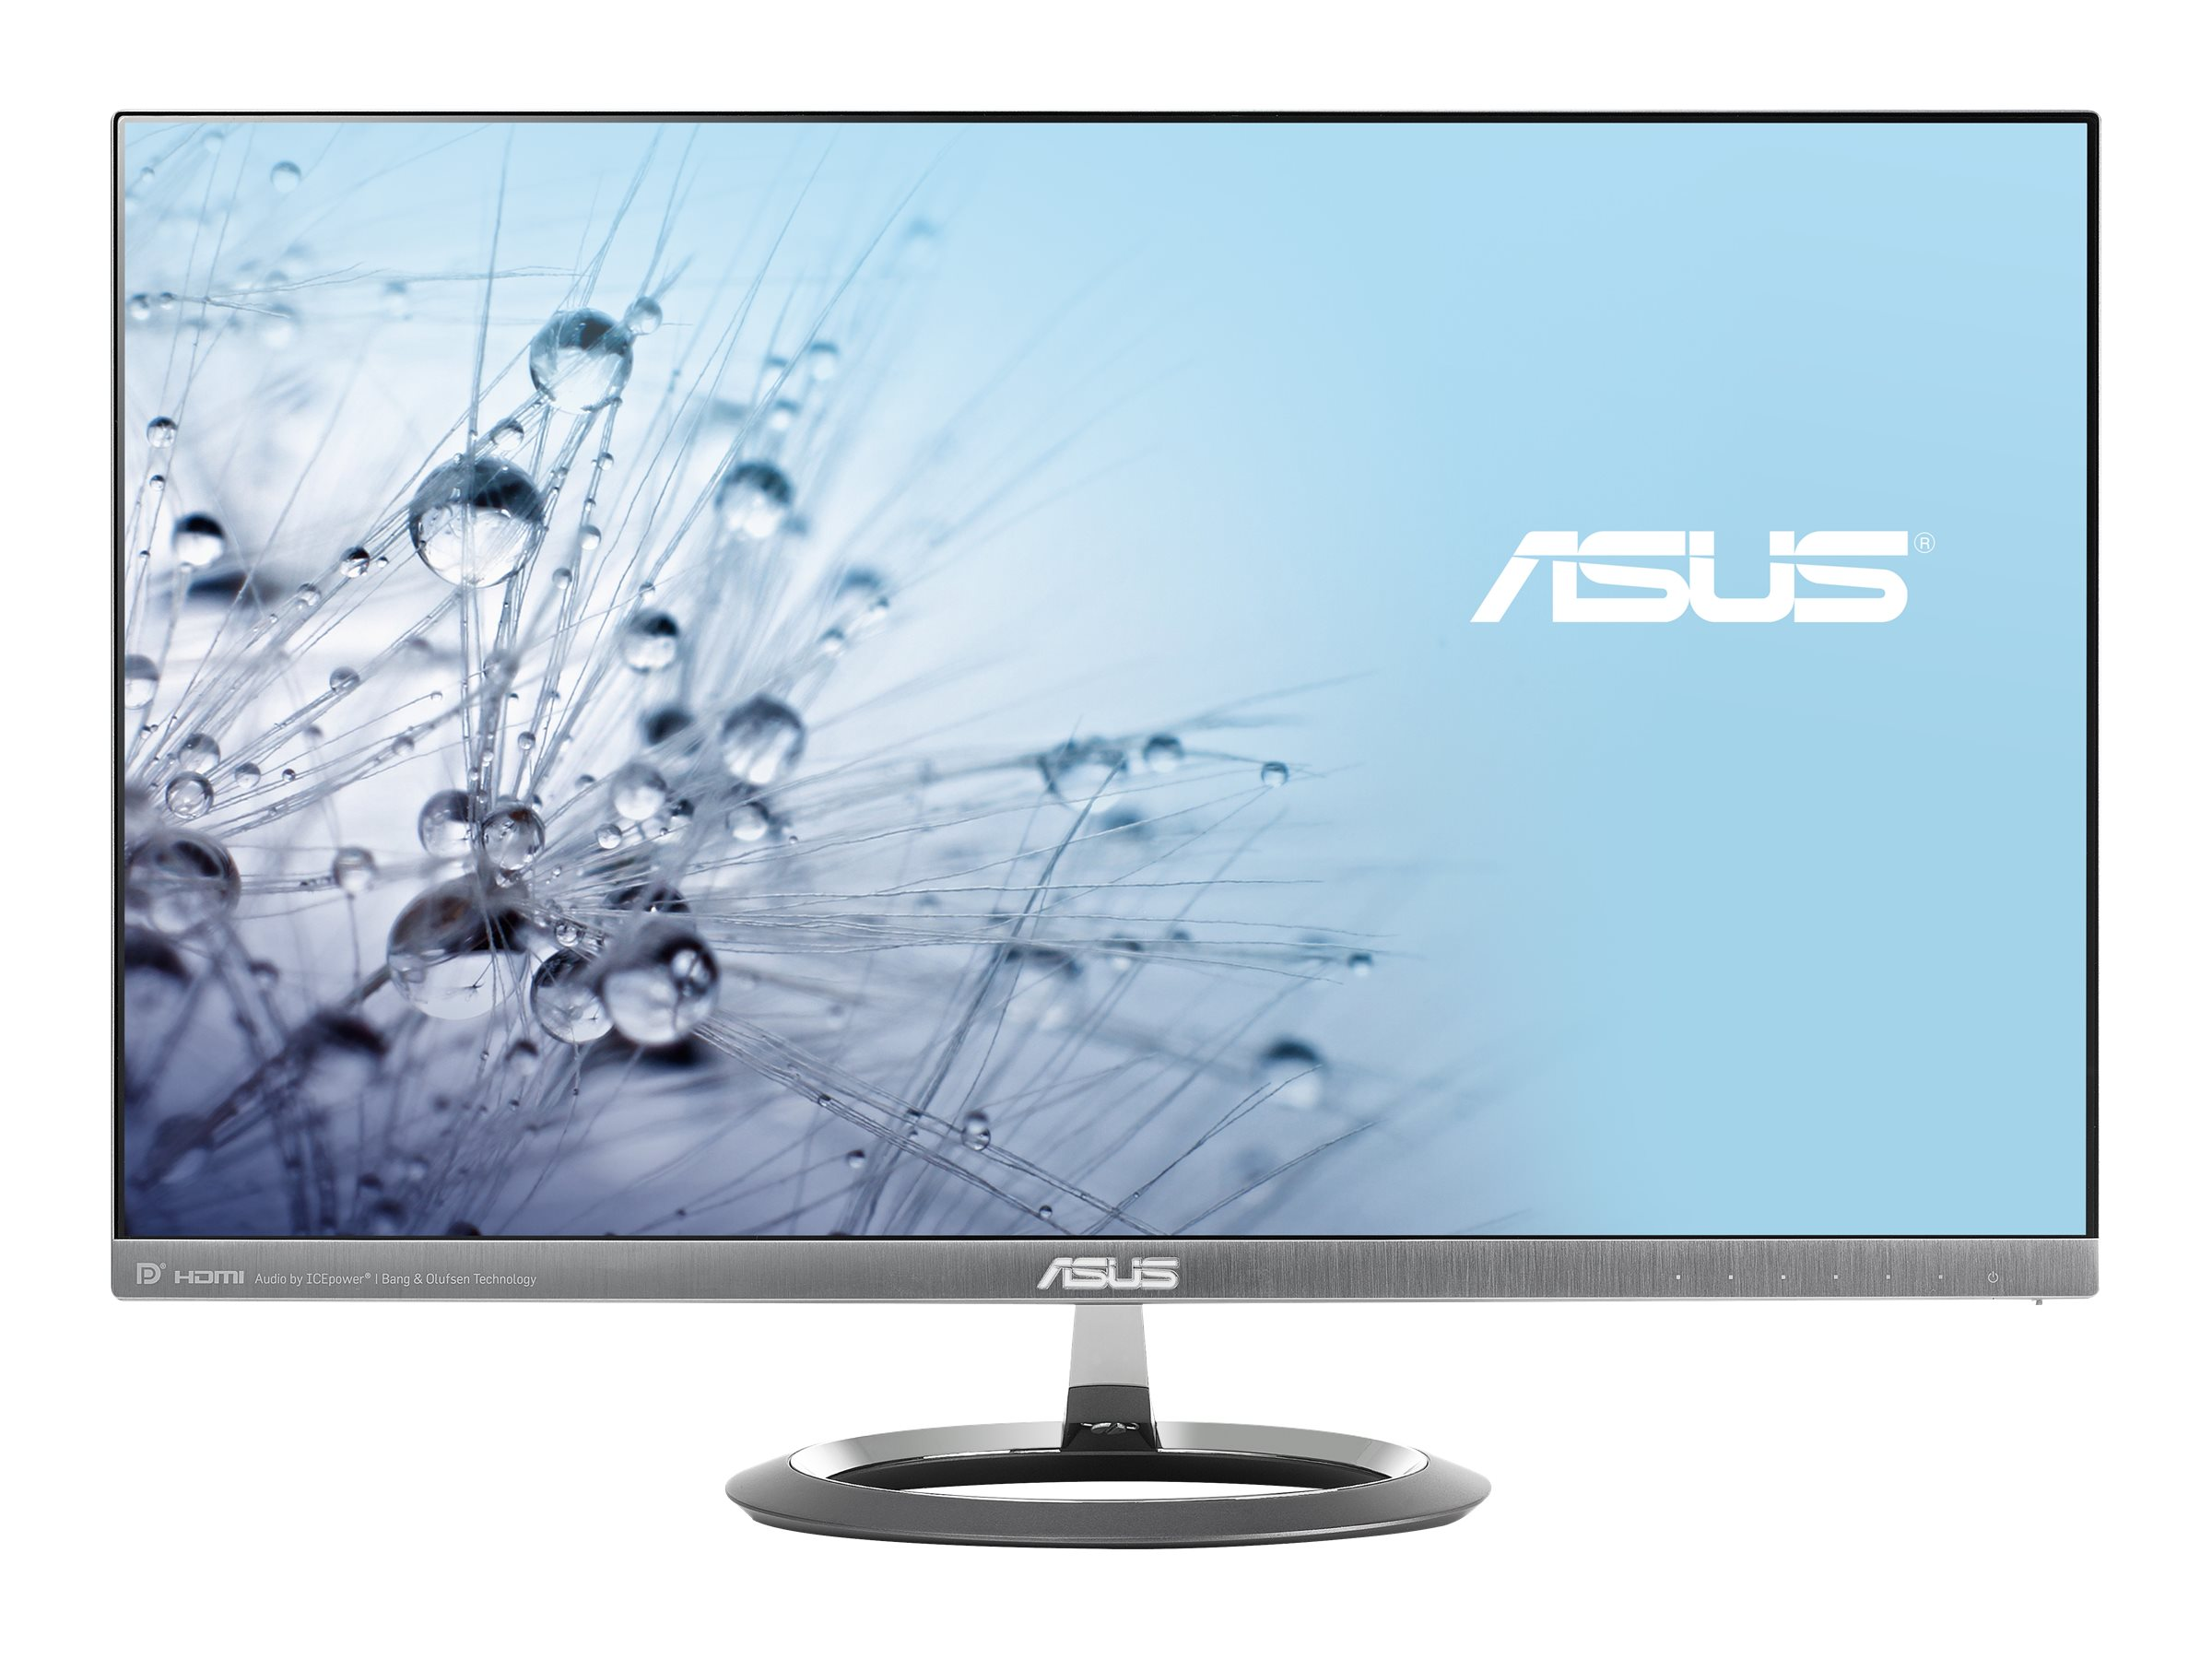 Asus 25 MX25AQ WQHD LED-LCD Monitor, Gray, MX25AQ, 30814654, Monitors - LED-LCD